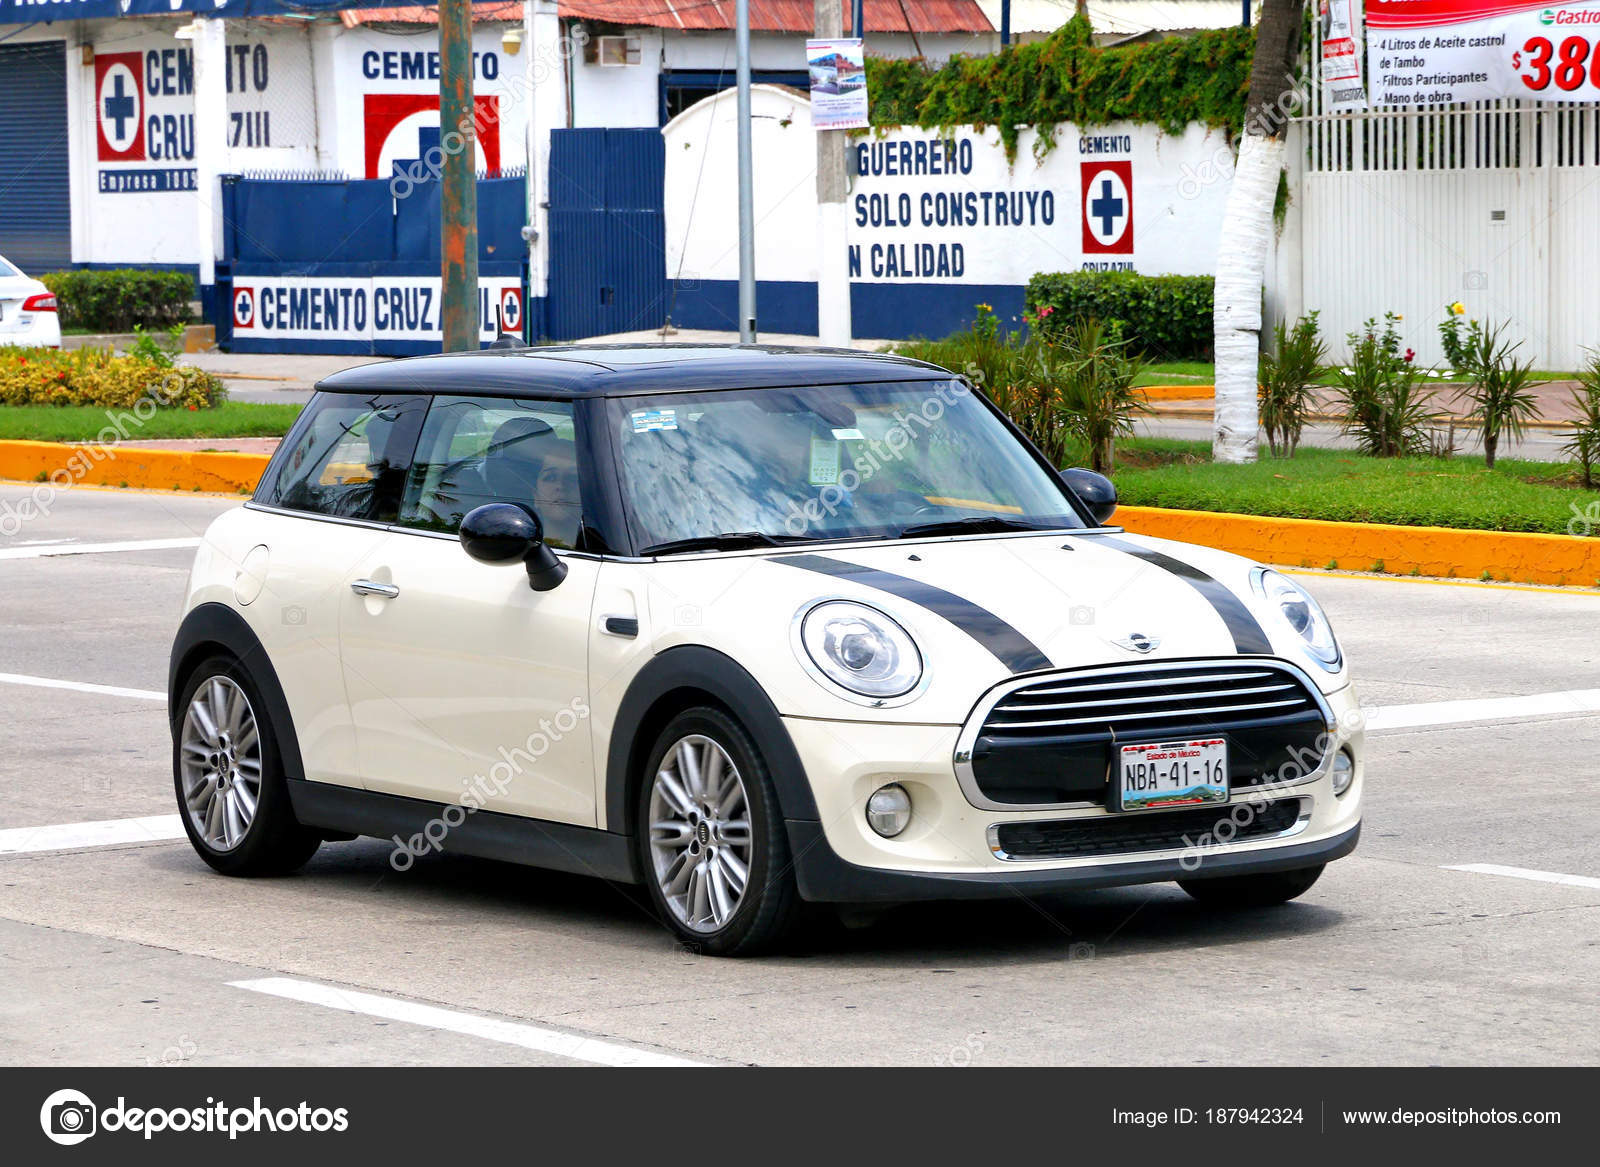 acapulco mexico may 2017 motor car mini cooper city street stock editorial photo c artzzz 187942324 https depositphotos com 187942324 stock photo acapulco mexico may 2017 motor html